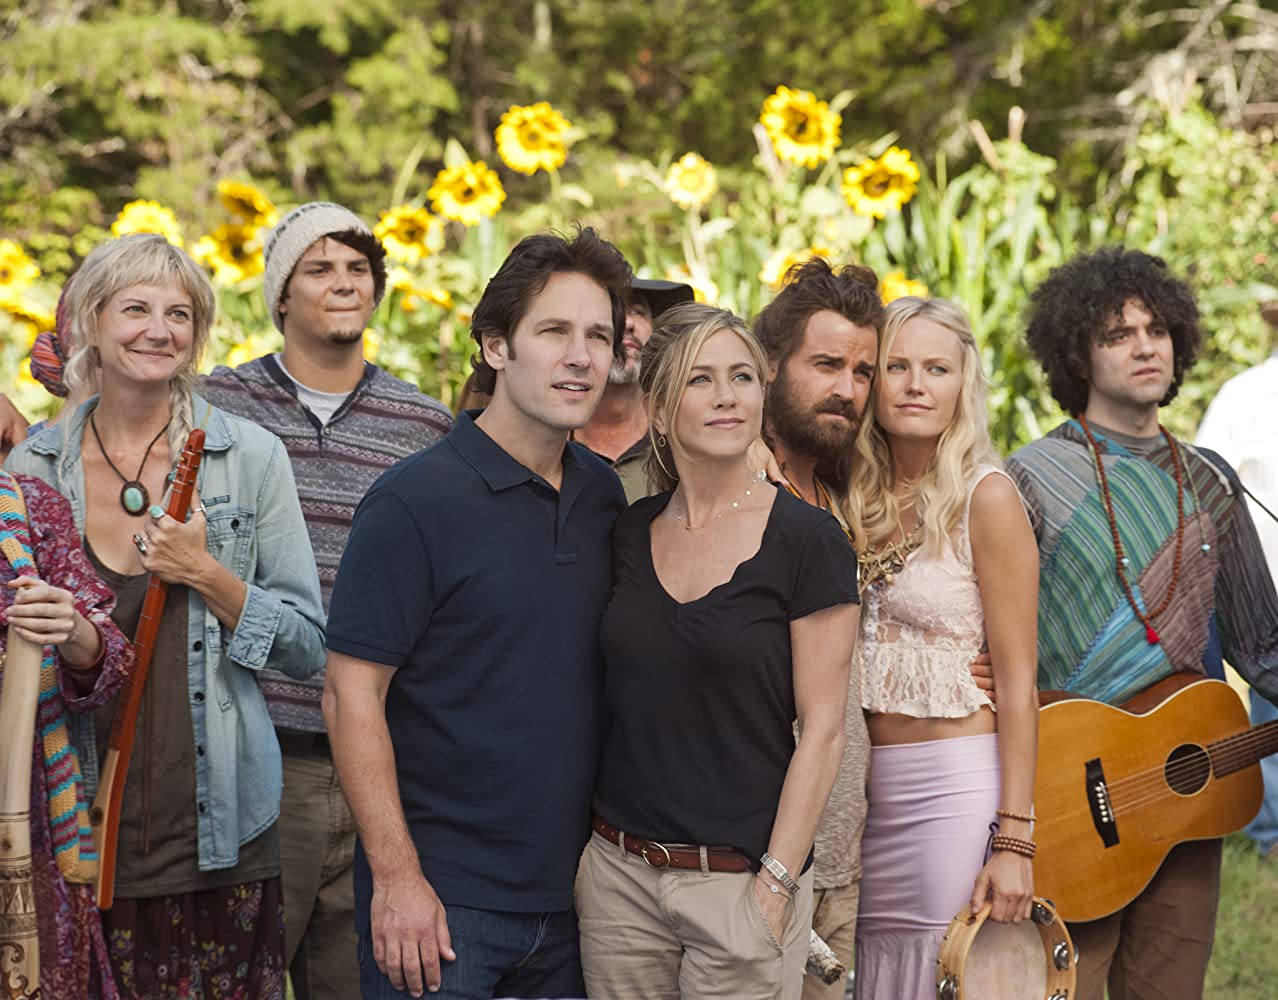 Jennifer Aniston, Malin Akerman, Kerri Kenney, Paul Rudd, Justin Theroux, and Peter Salett in Wanderlust (2012)